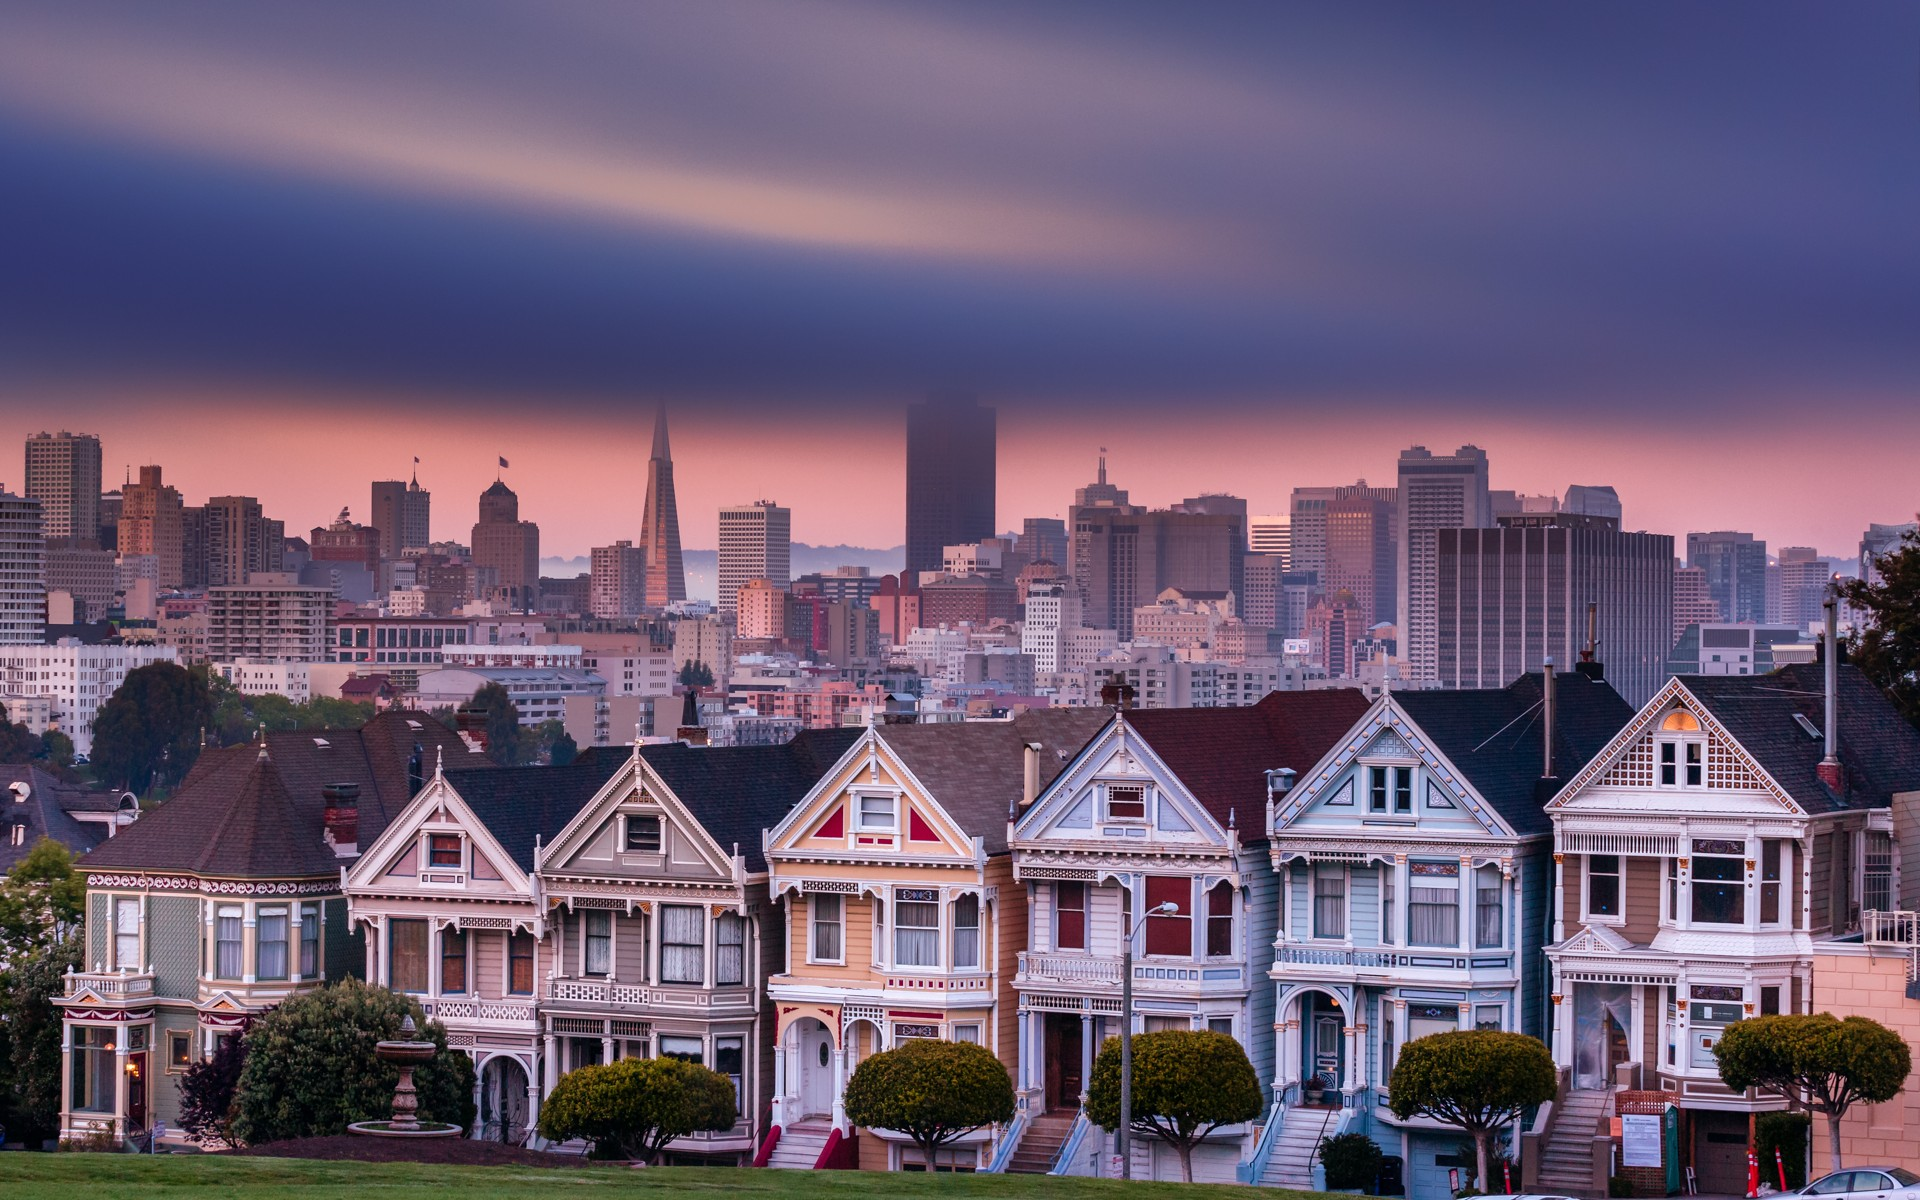 San francisco city cities buildings building clouds houses for Wallpaper with houses on it